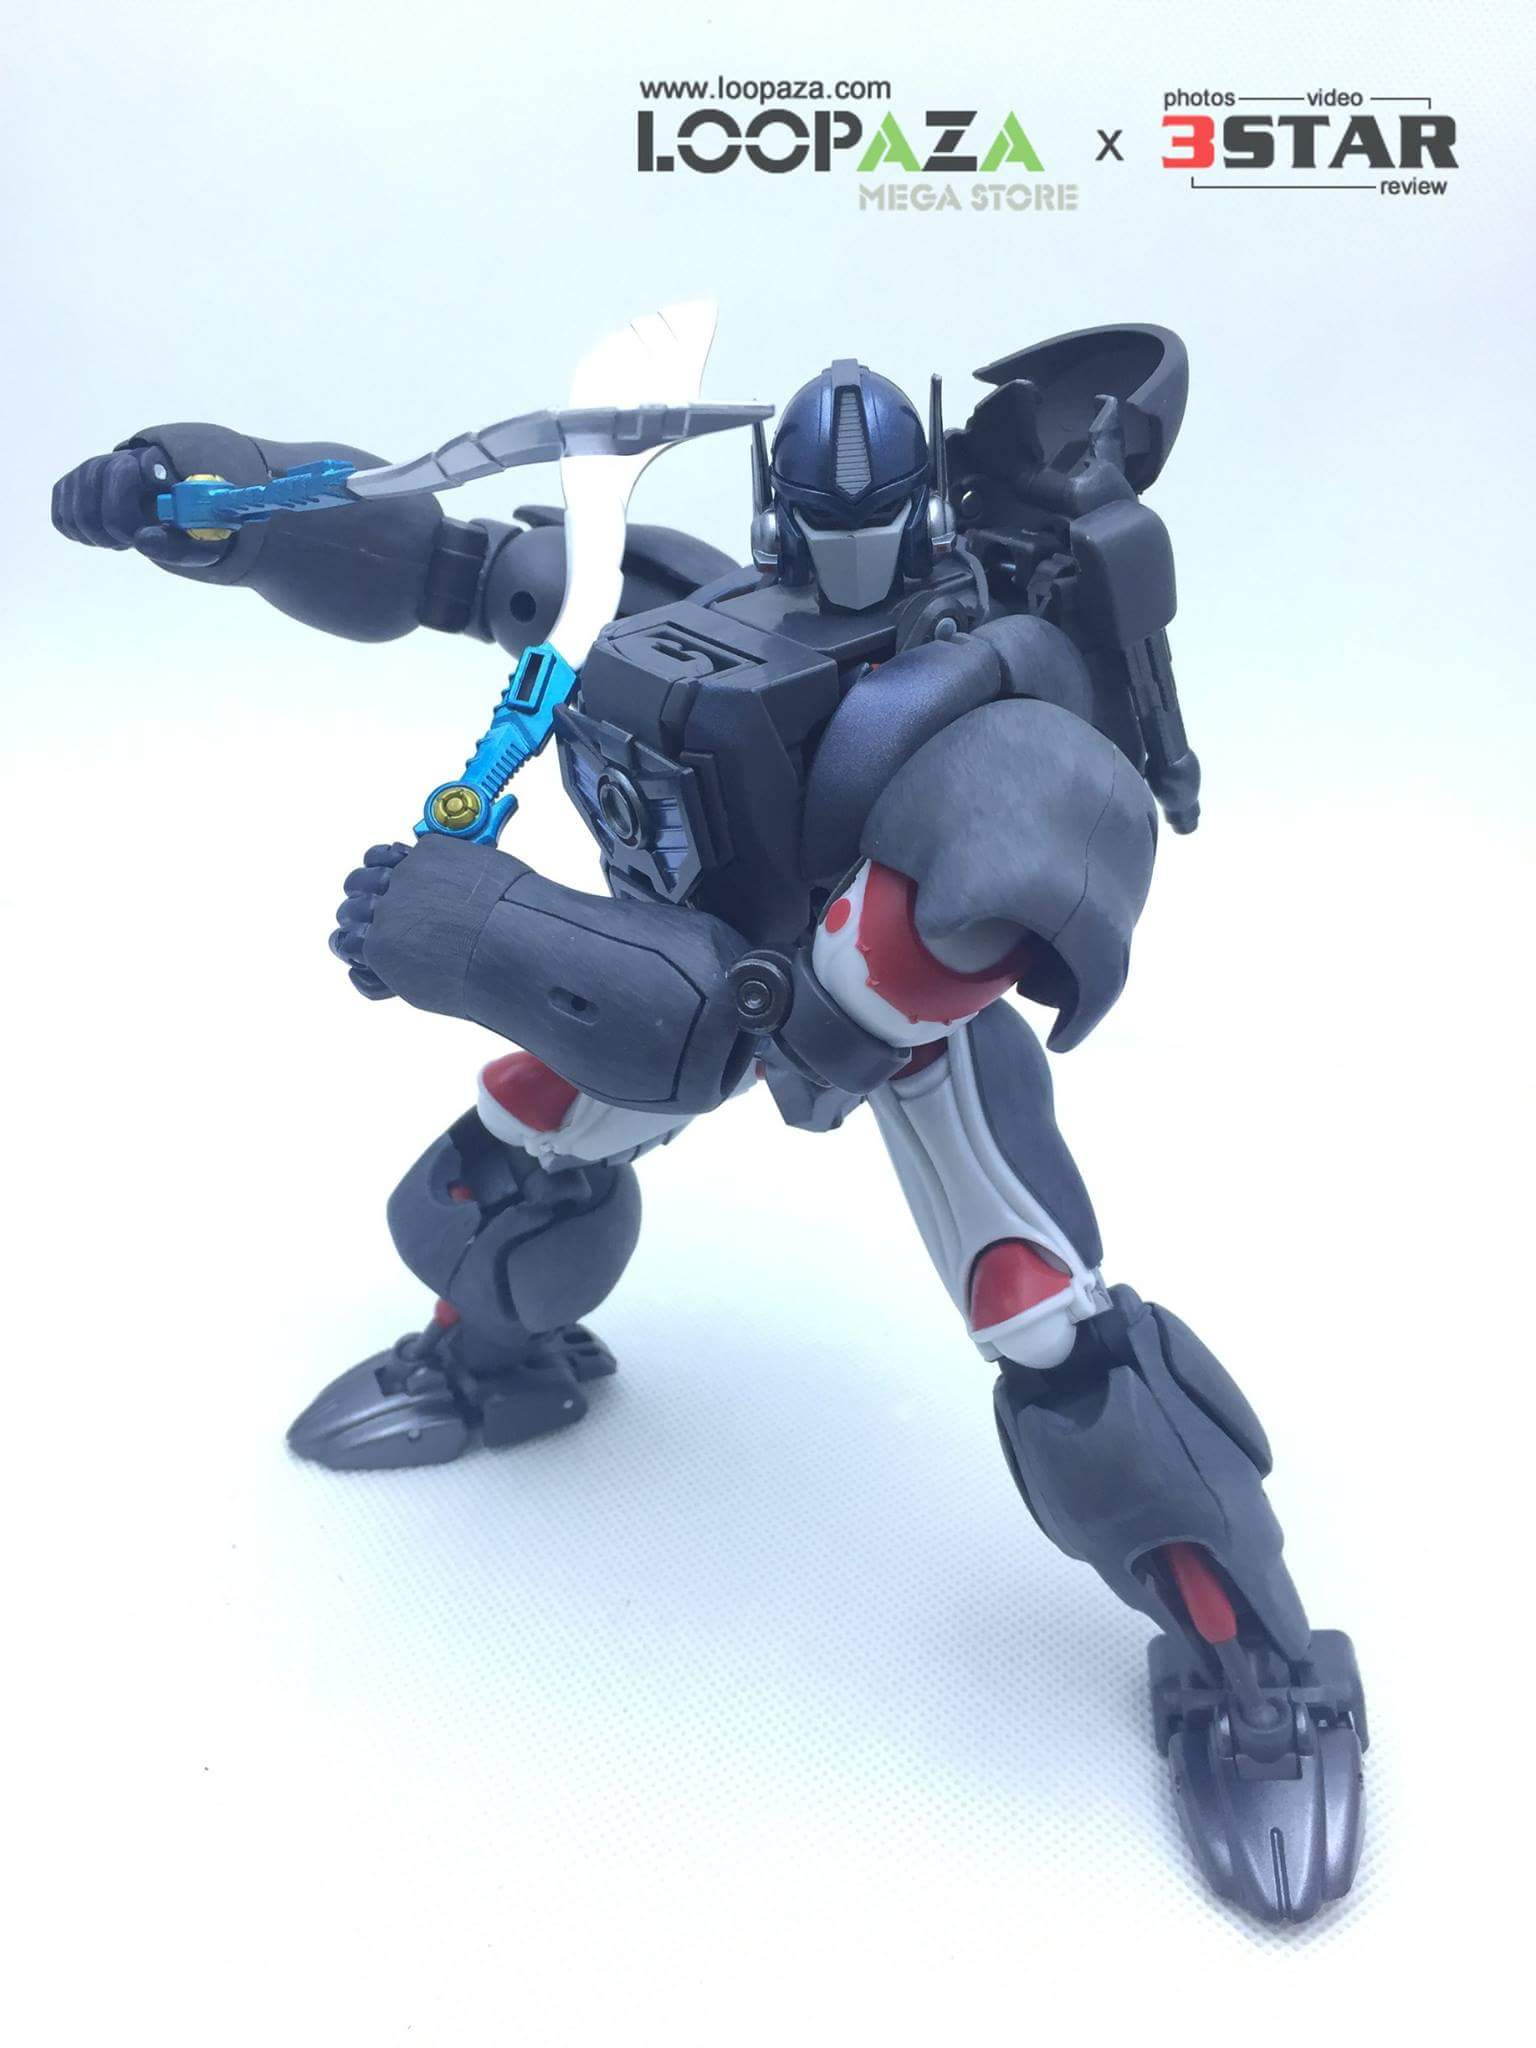 [Masterpiece] MP-32, MP-38 Optimus Primal et MP-38+ Burning Convoy (Beast Wars) - Page 3 6mnFG7as